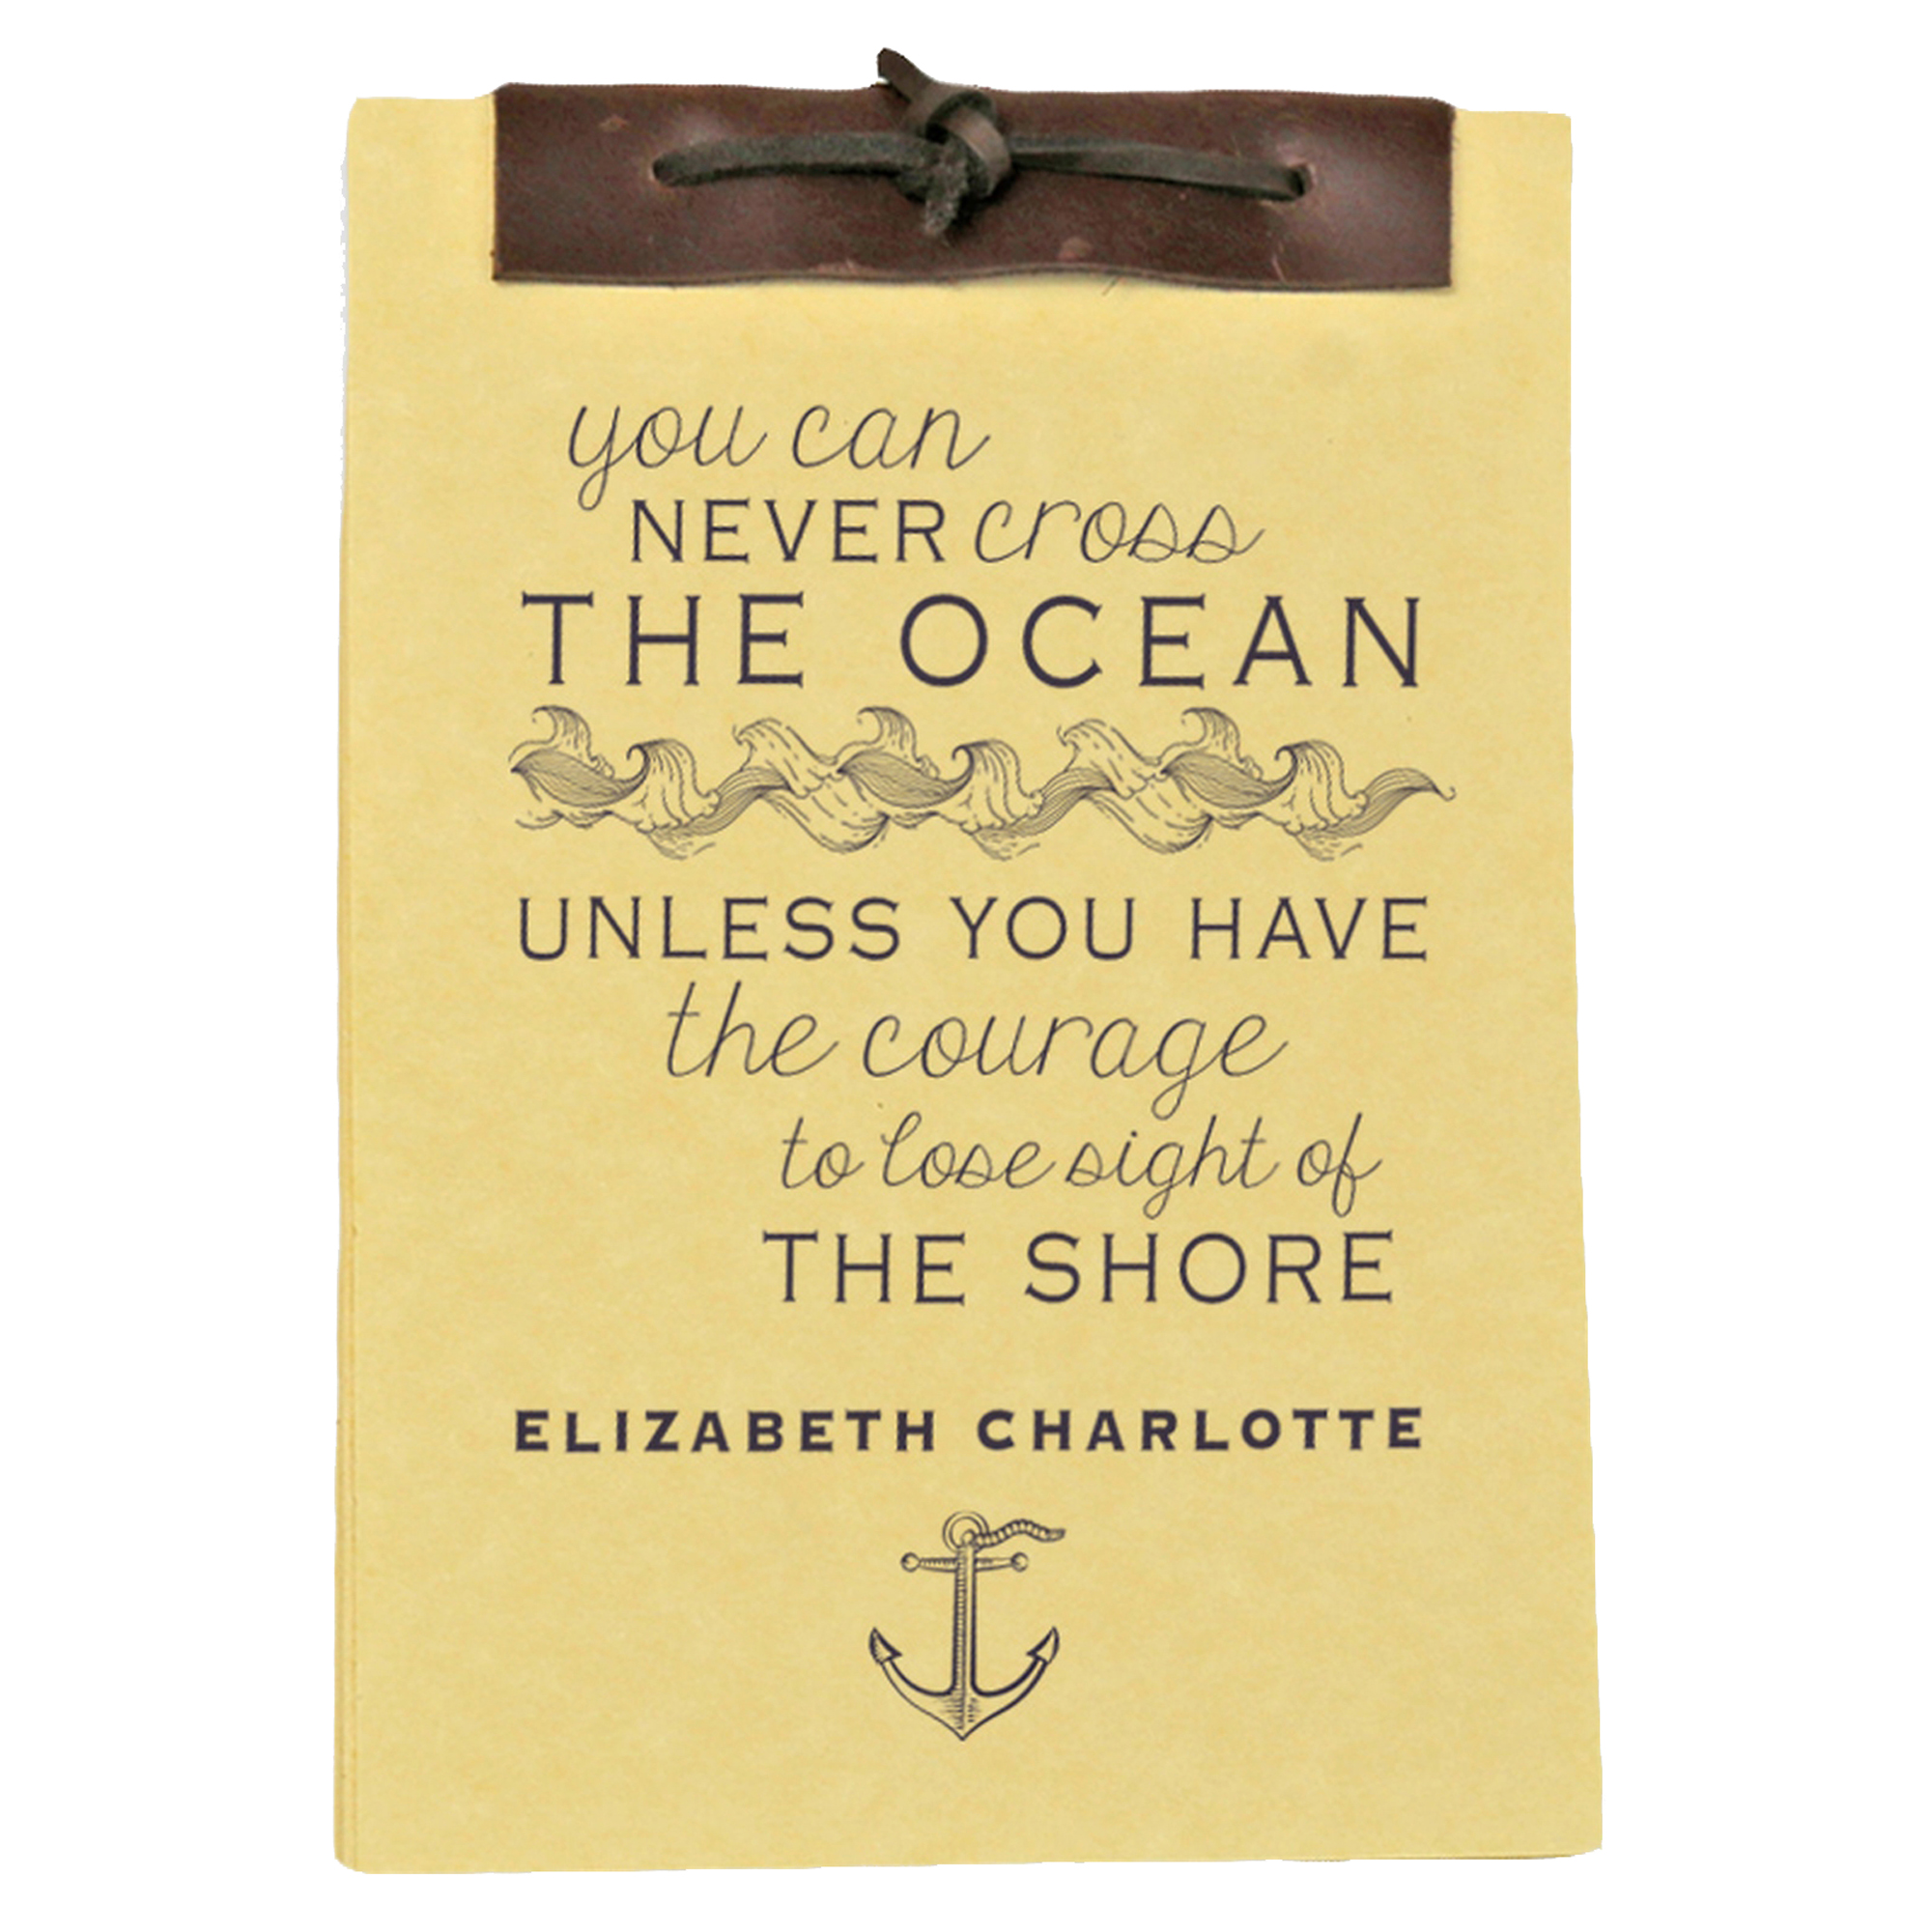 The Ocean Antique Style Personalized Notebook 8.5 x 5.5 inches